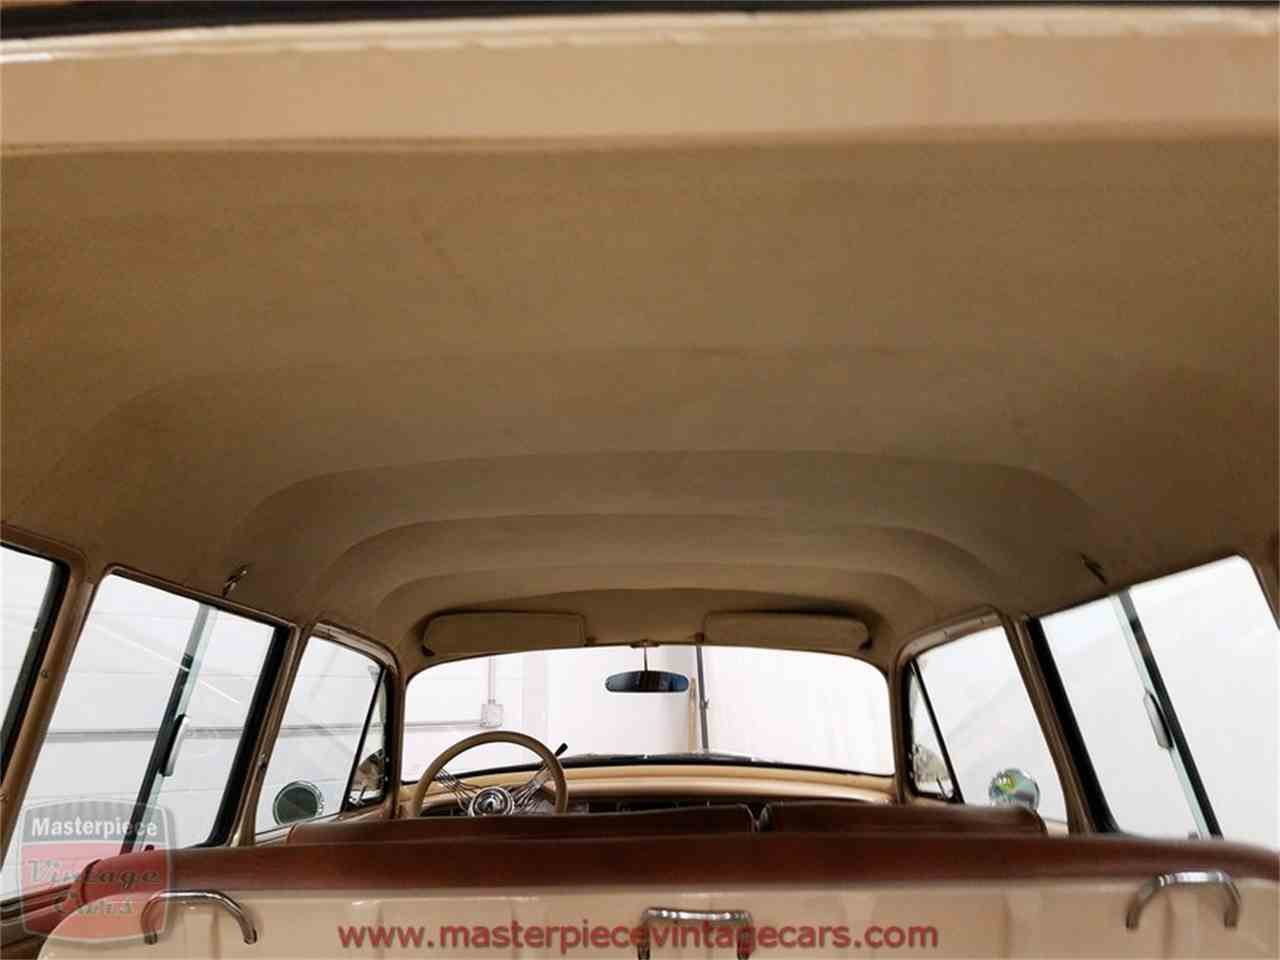 Large Picture of '54 Plaza Suburban located in Indiana - $34,900.00 Offered by Masterpiece Vintage Cars - KV49